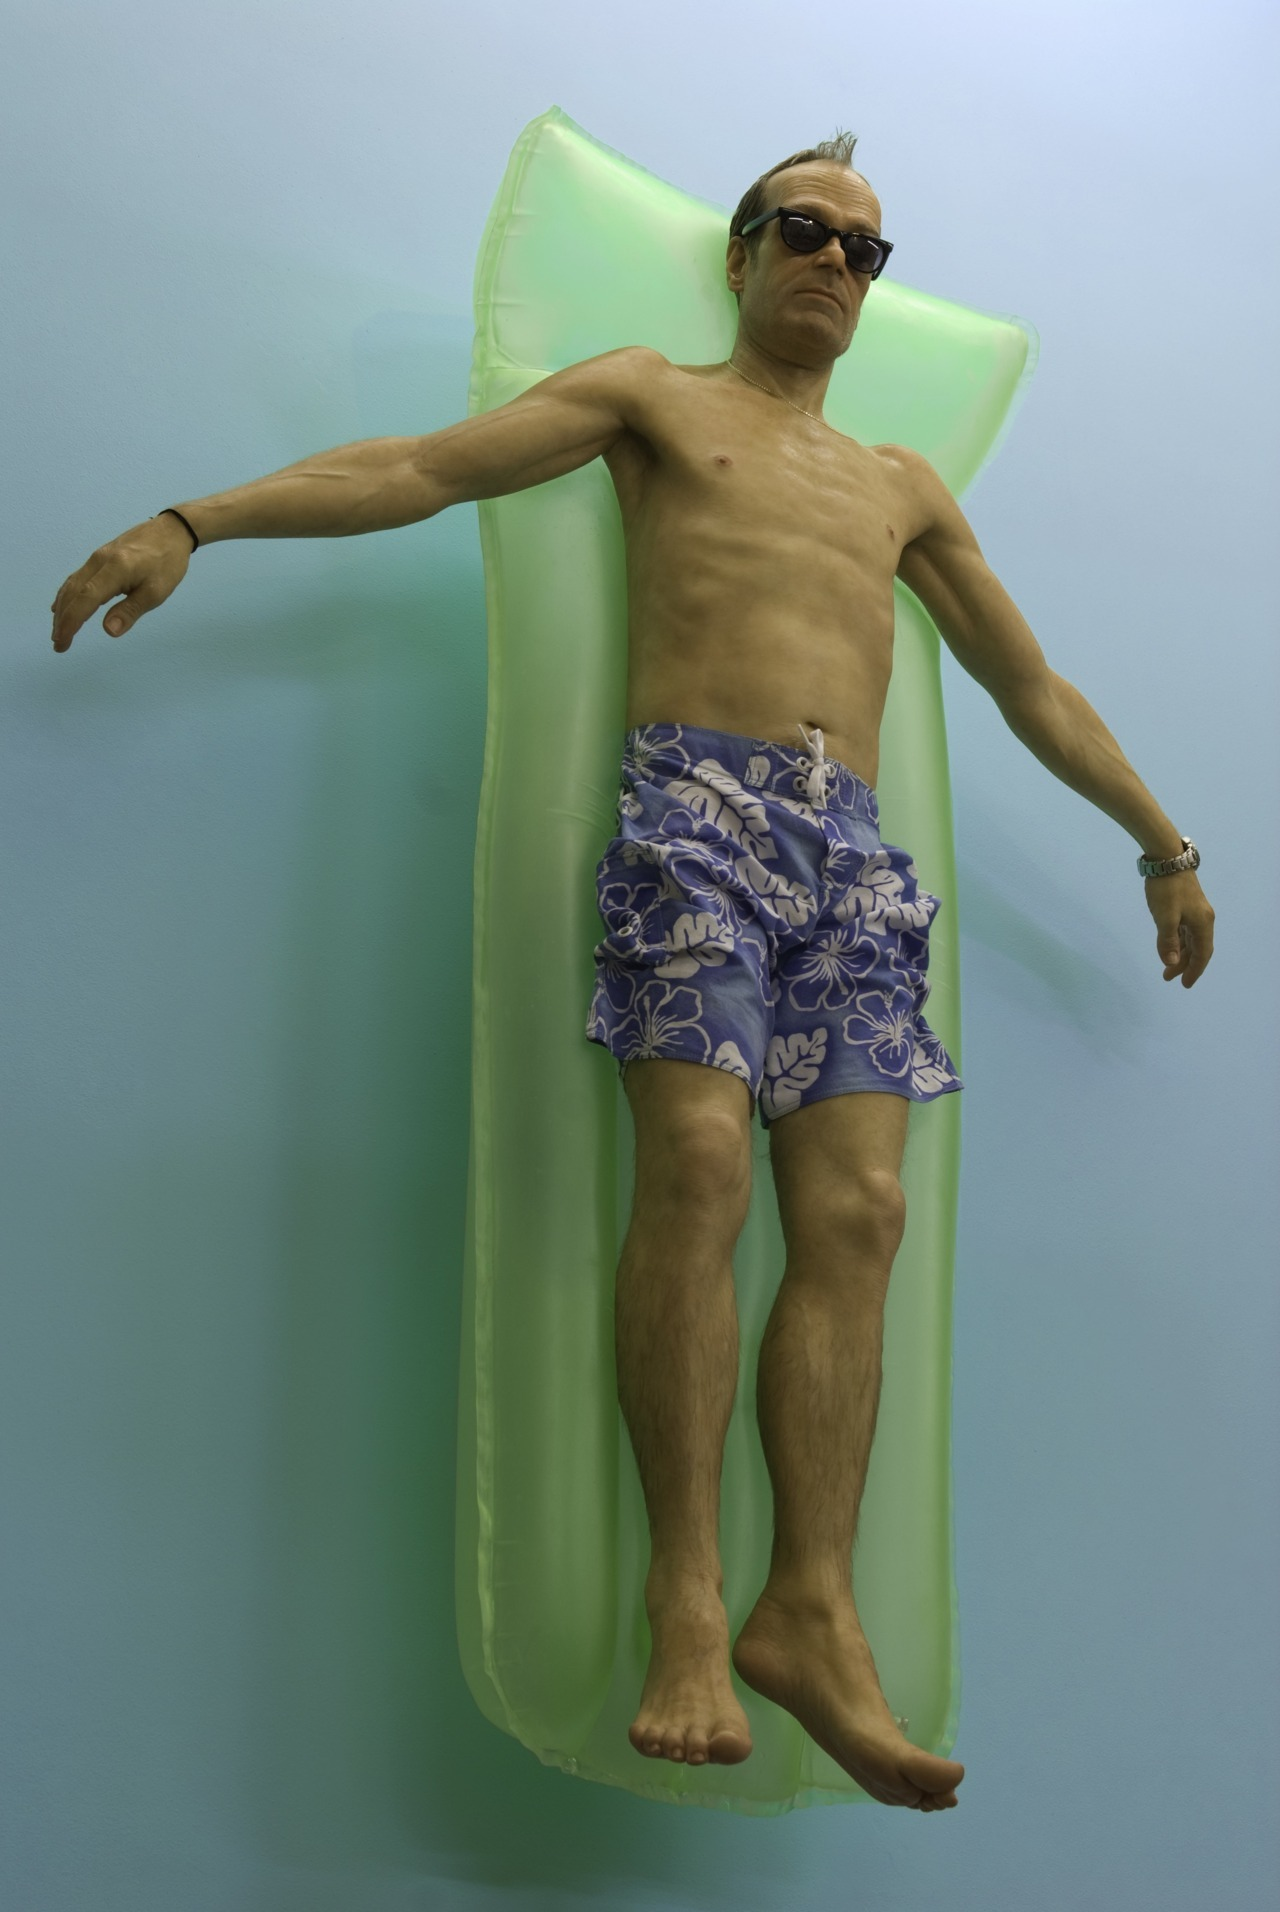 Heat wave in the northeast… Ron Mueck, Drift, 2009, Mixed media